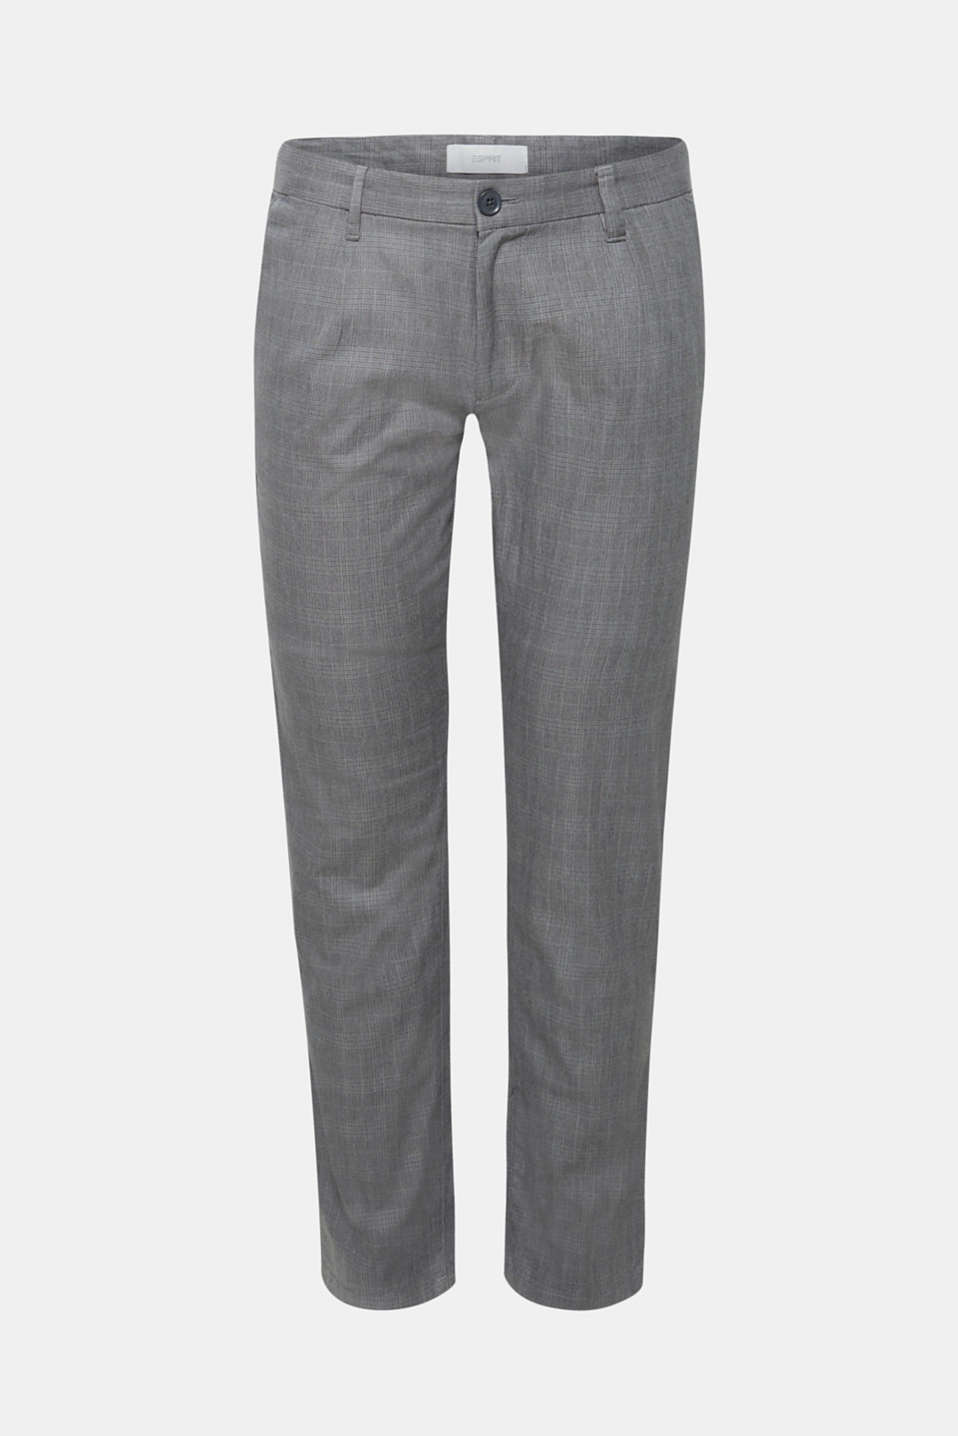 Trousers with a check pattern, made of stretch cotton, GREY, detail image number 5